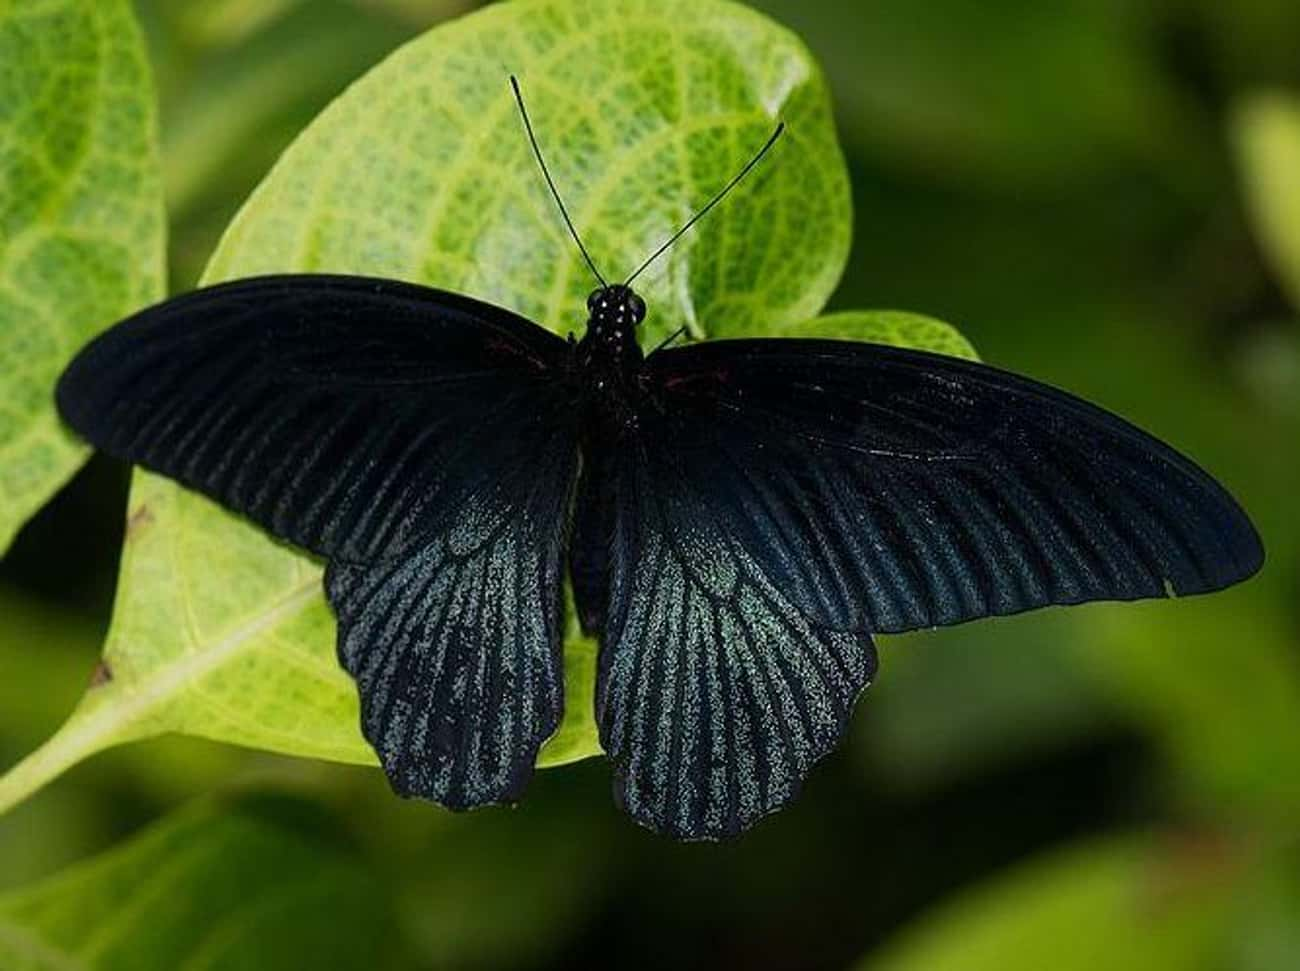 Black Butterflies Are Typically Regarded As A Symbol Of Death